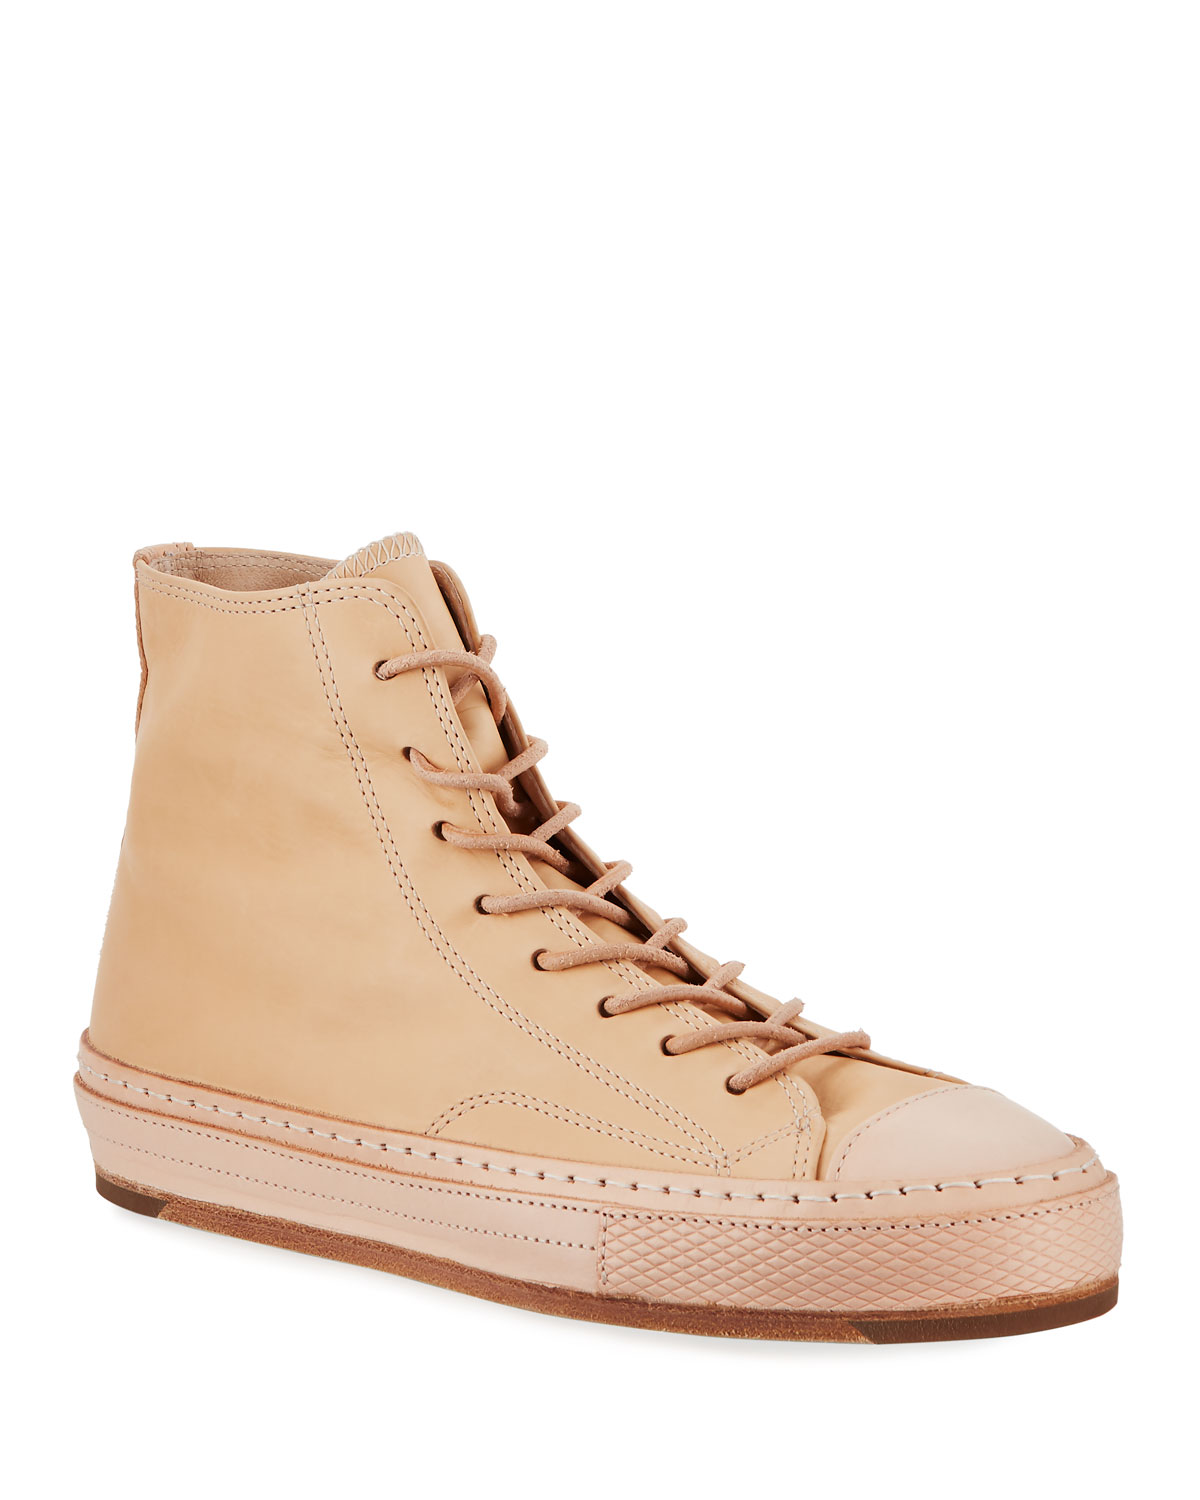 9308c3ab6fd0 Hender Scheme Men s MIP High-Top Leather Sneakers